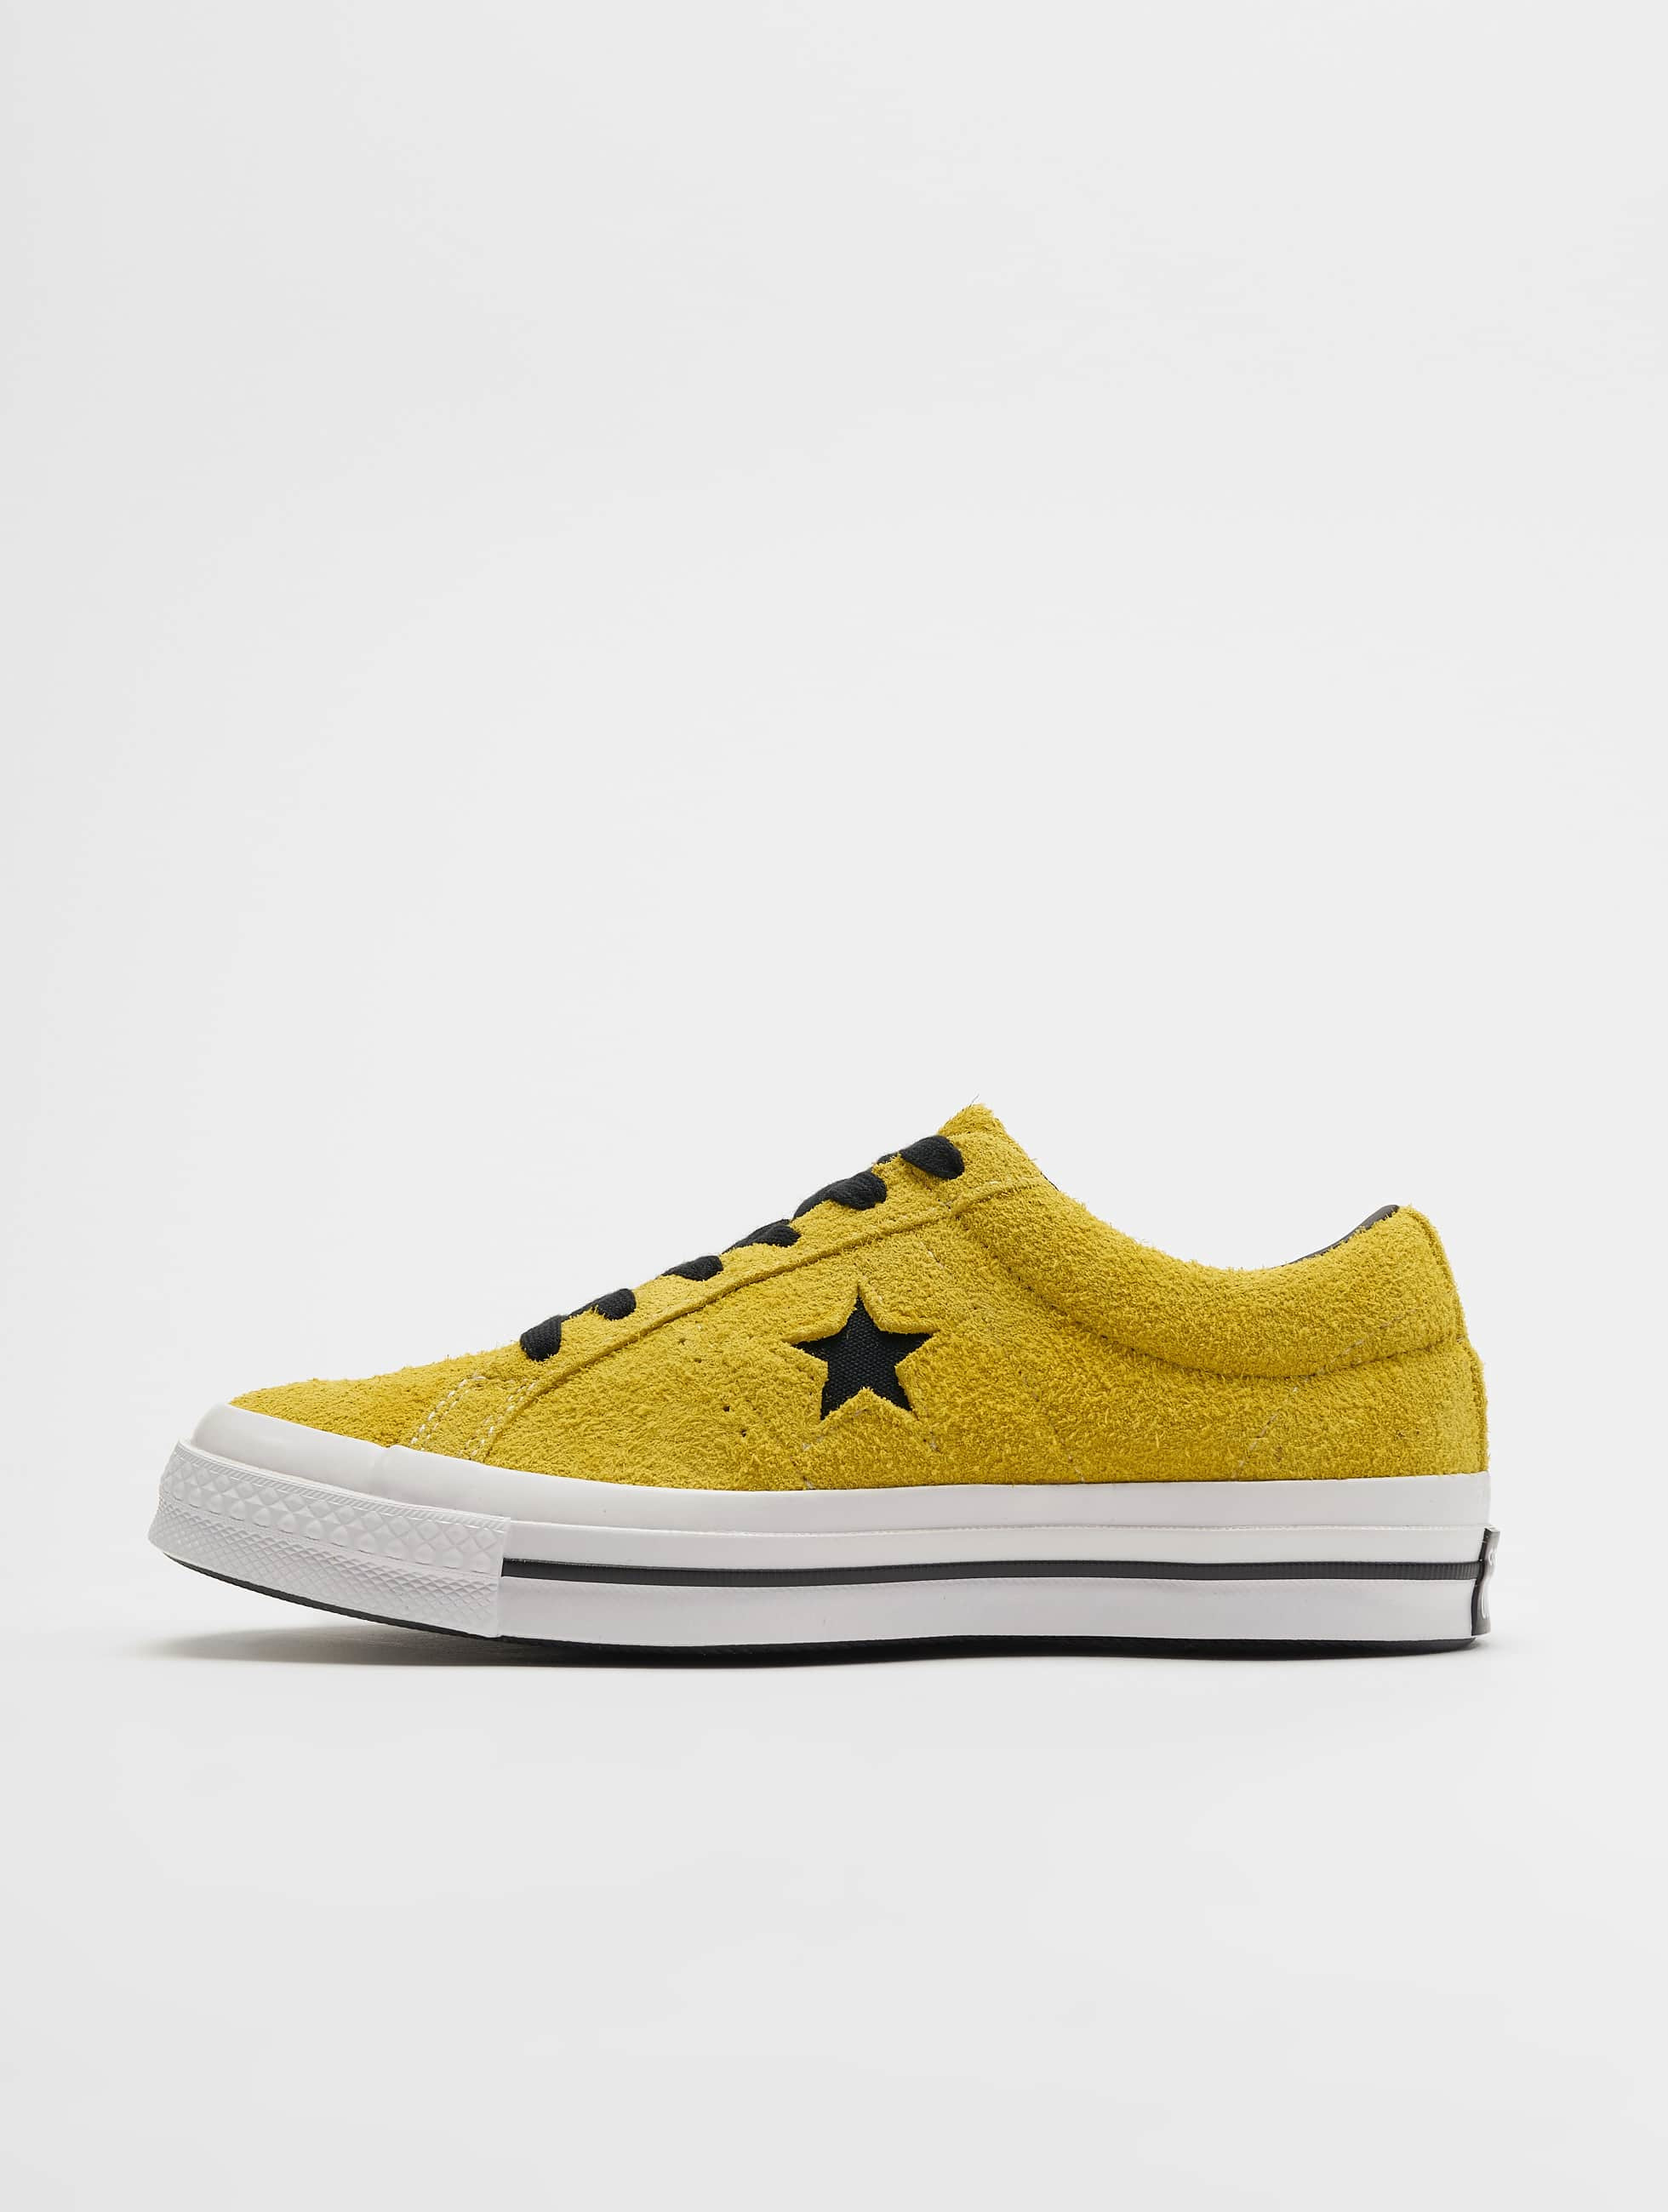 Ox Converse One Star Sneakers Citronblackwhite Bold 3jc5q4ALR